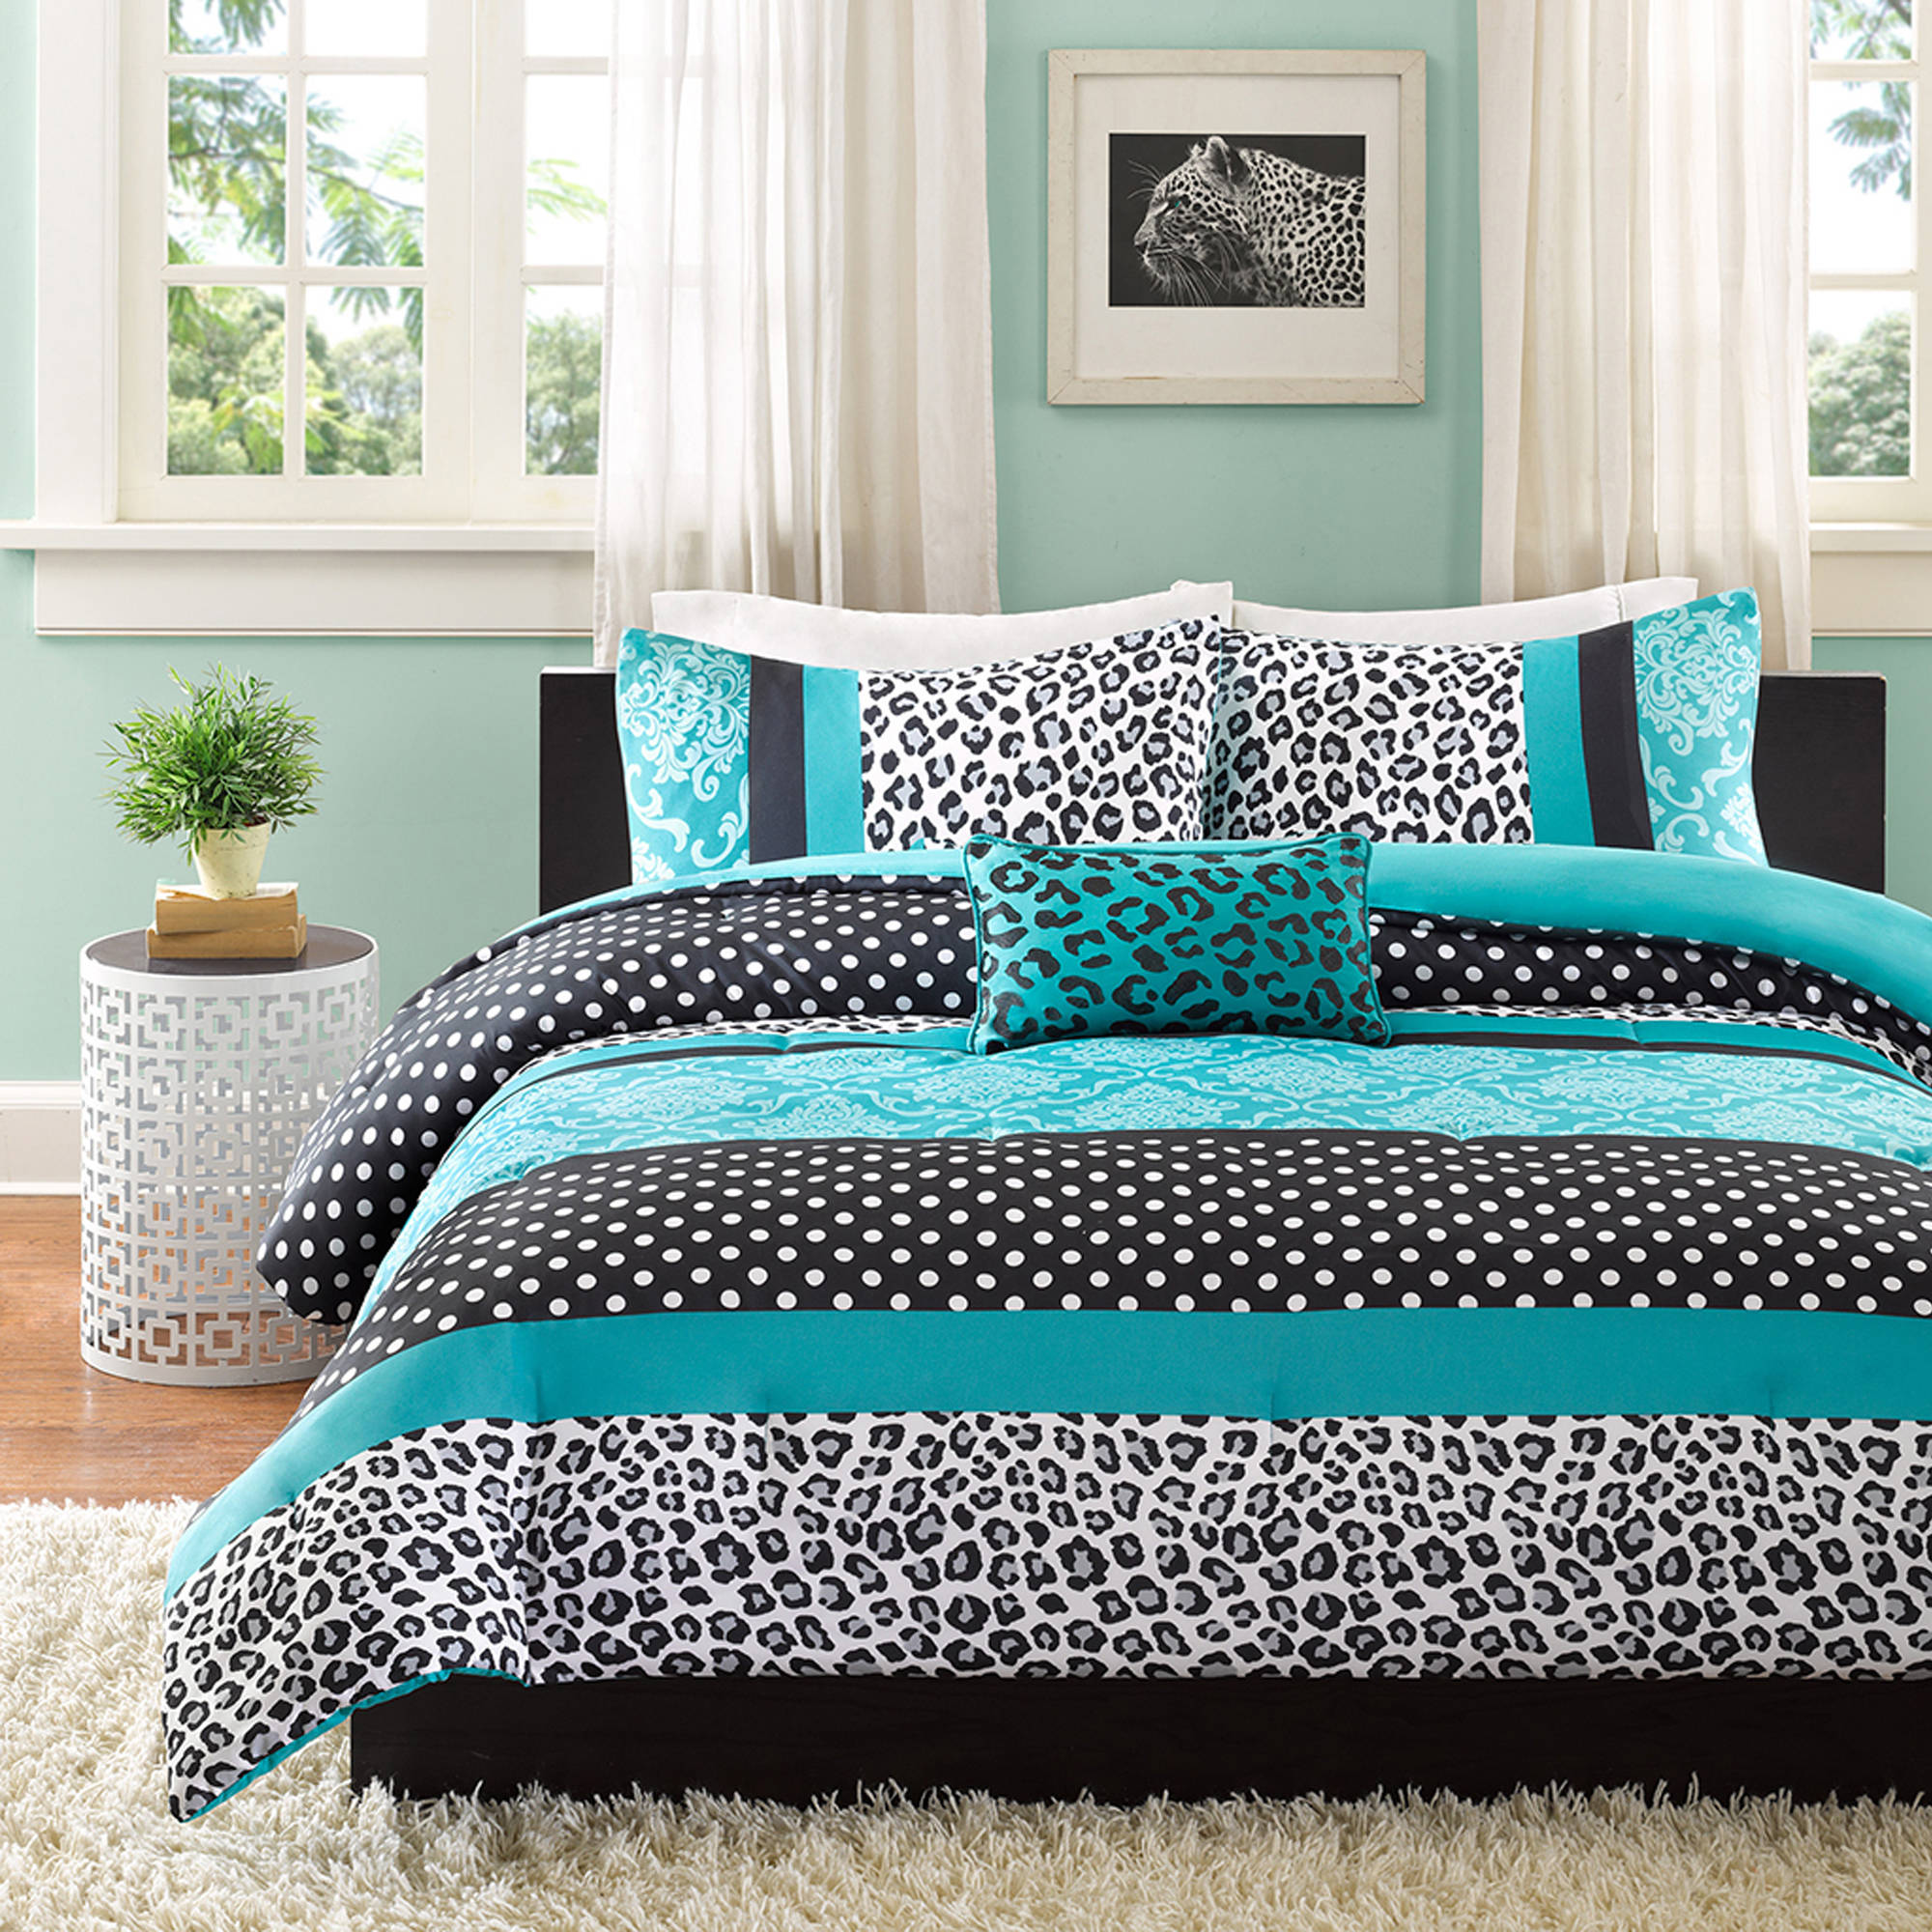 Bed sets for teenage girls zebra - Bed Sets For Teenage Girls Zebra 20